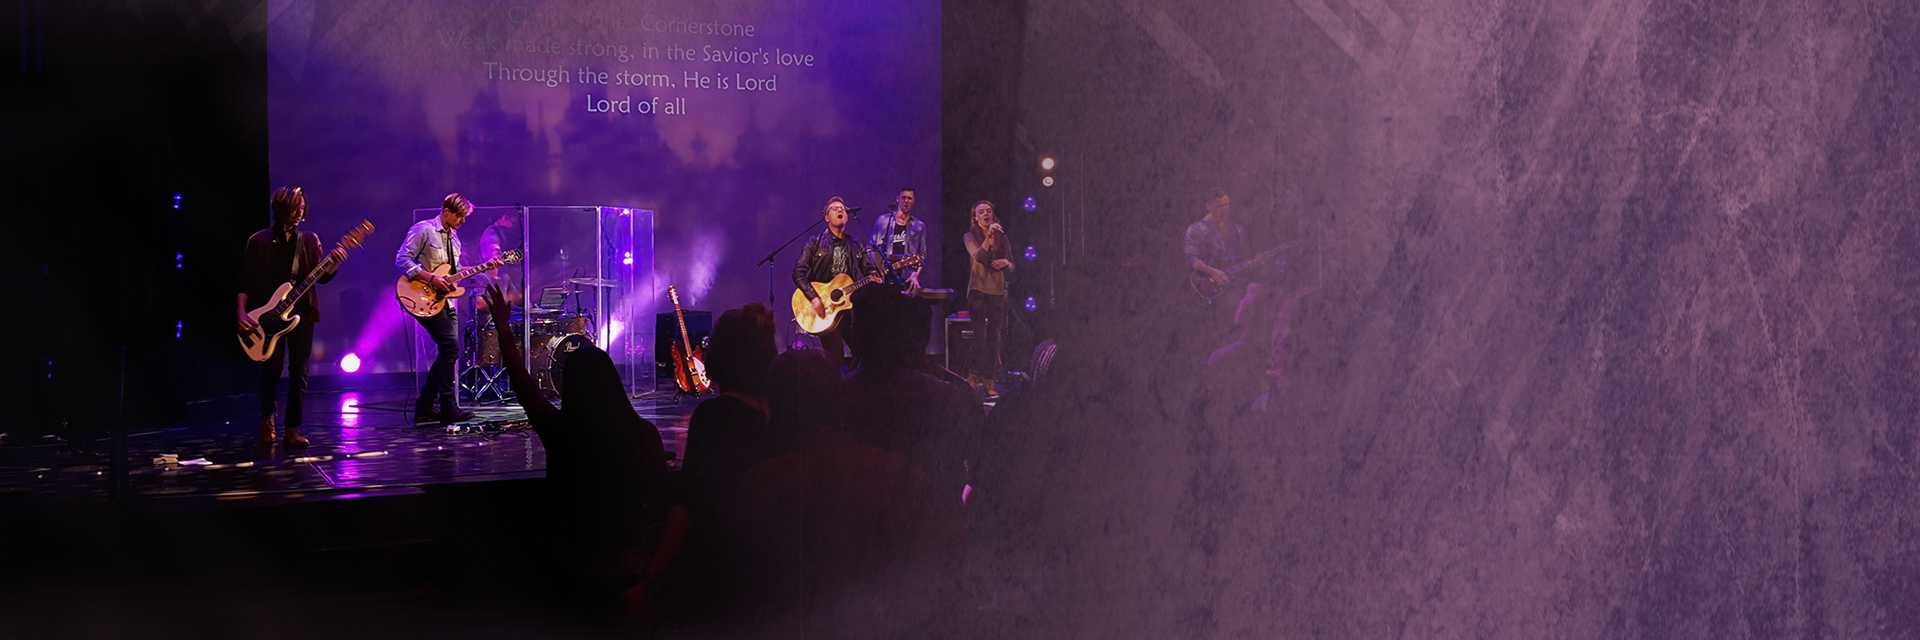 Bring Allan Scott to Your Church or Event!   CLICK HERE TO BOOK